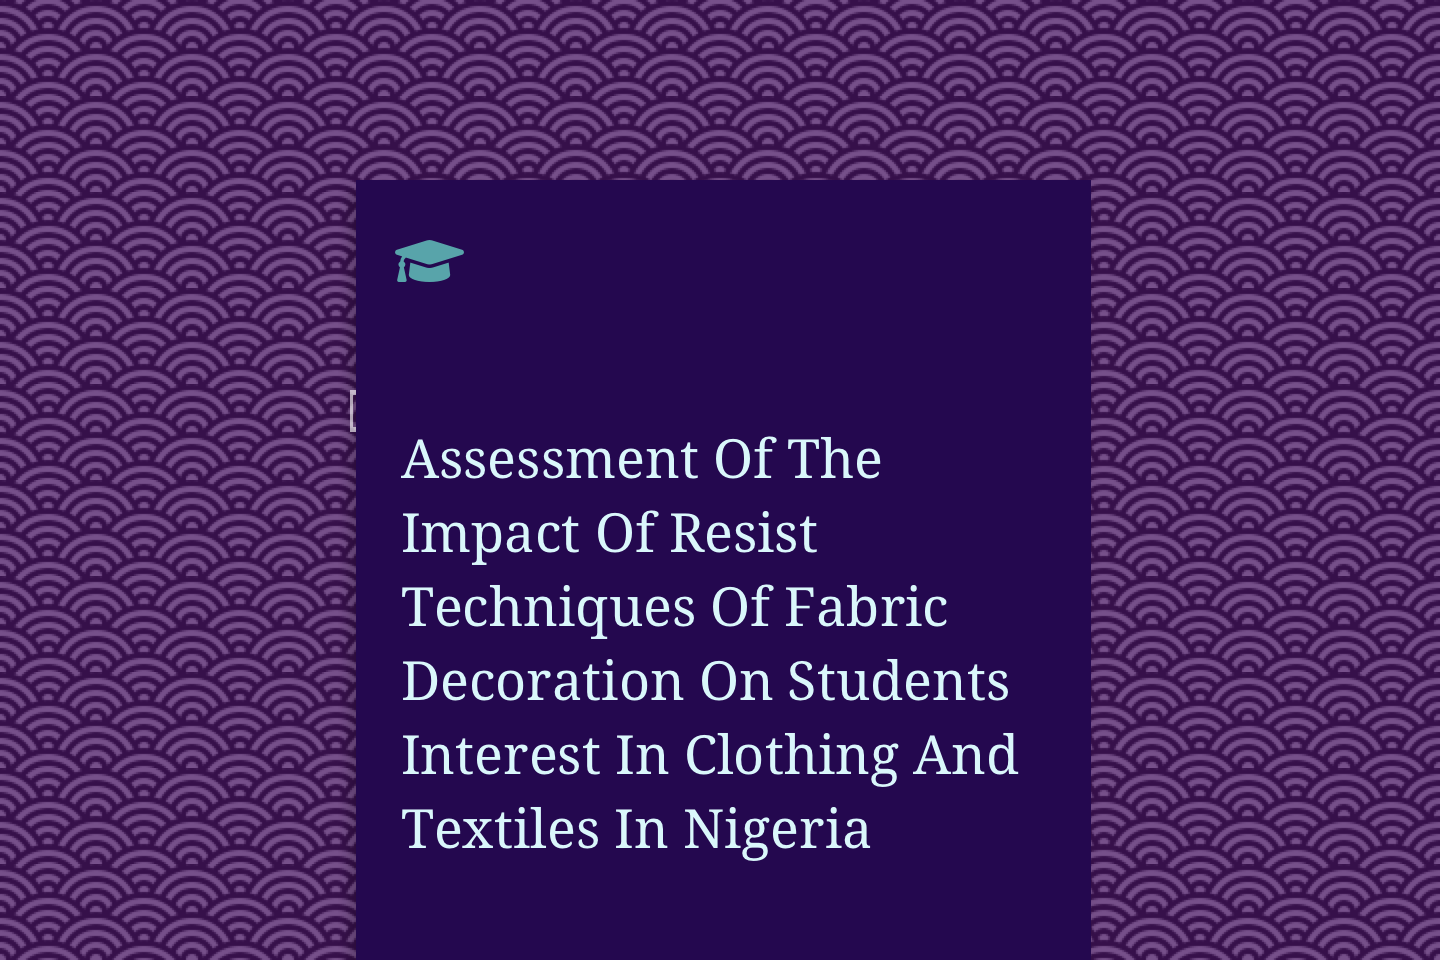 Assessment Of The Impact Of Resist Techniques Of Fabric Decoration On Students Interest In Clothing And Textiles In Nigeria